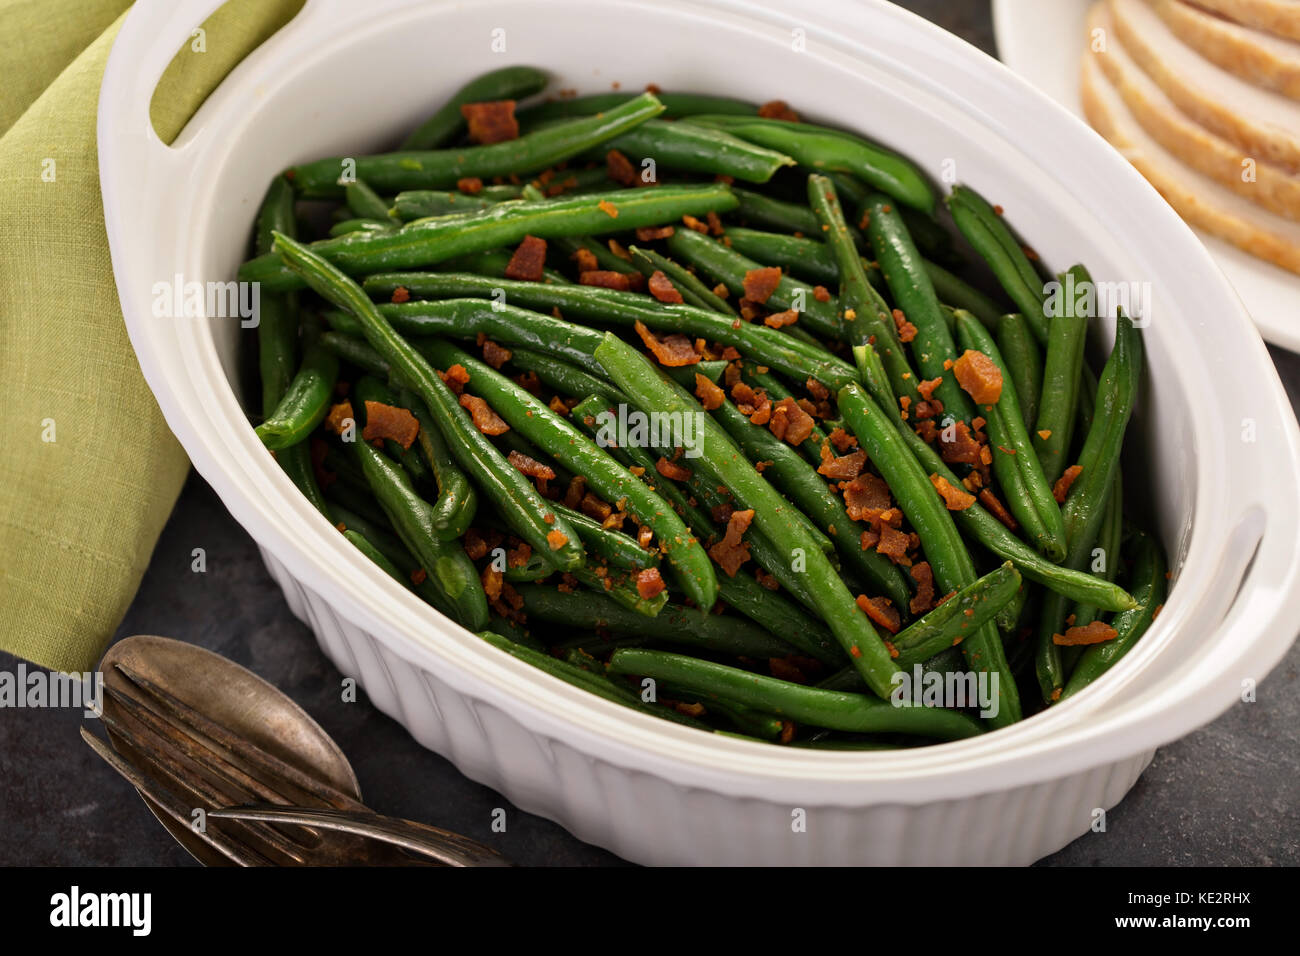 Green beans with bacon, side dish for Thanksgiving or Christmas dinner - Stock Image